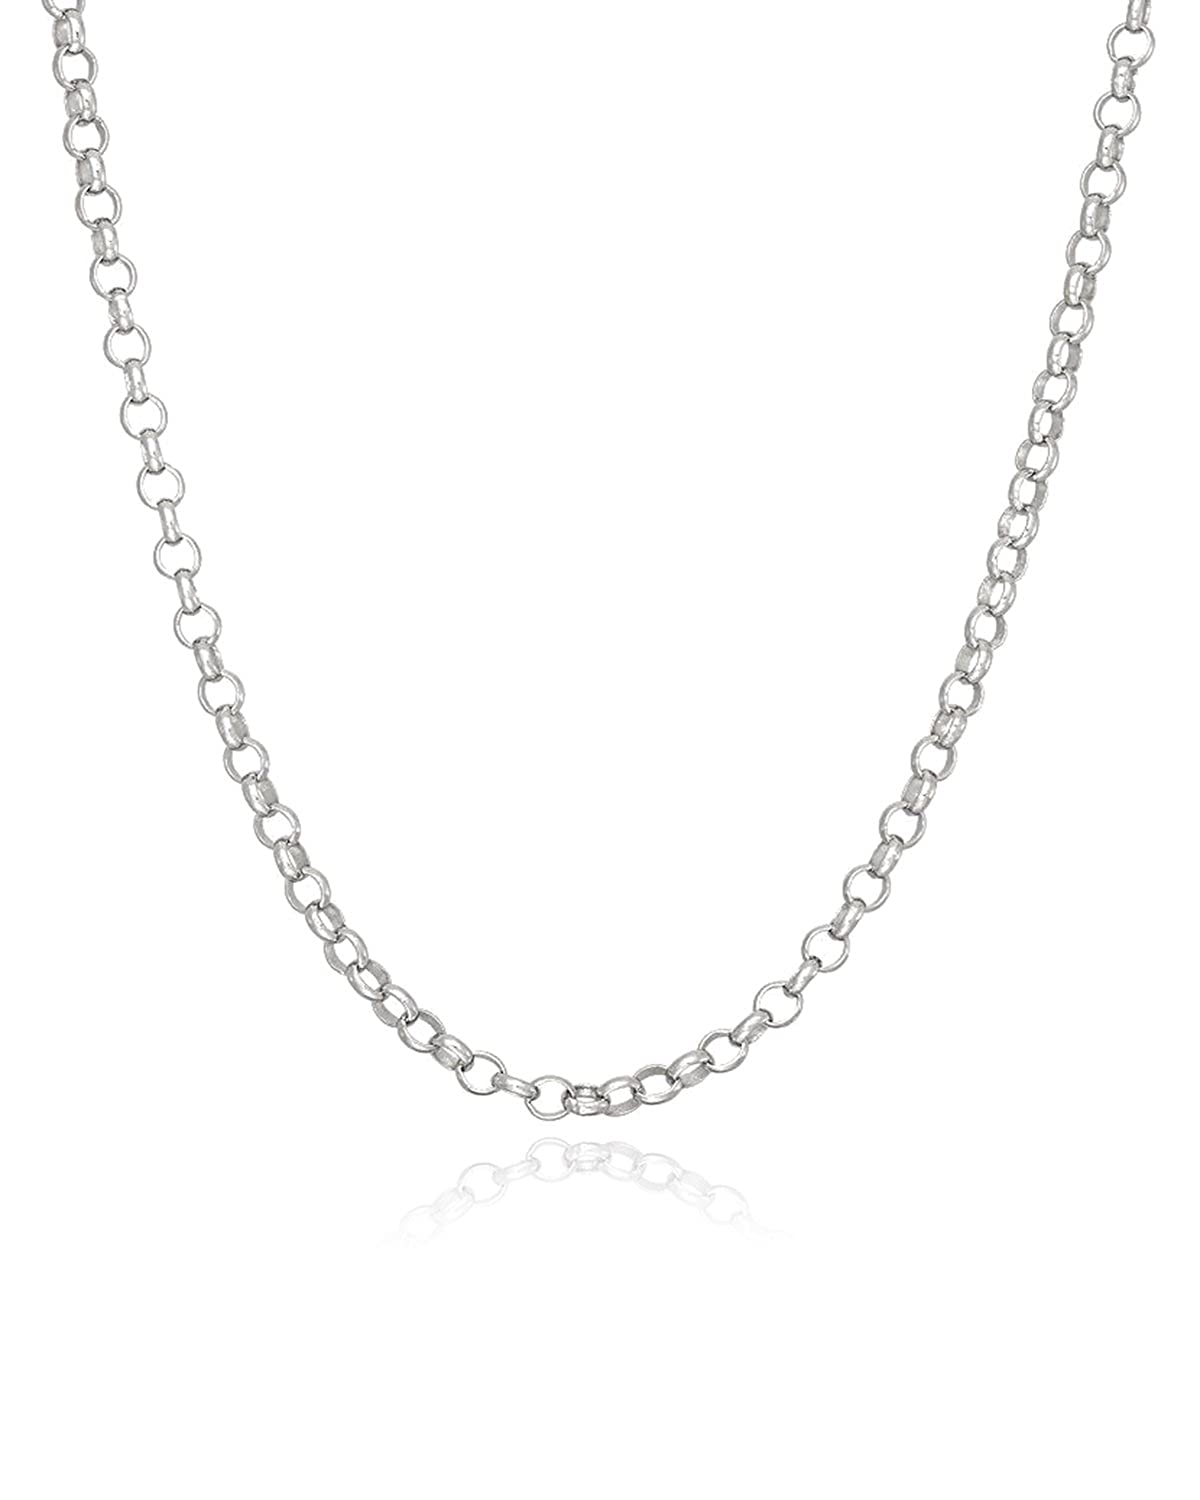 16 20 24 FashionJunkie4Life Sterling Silver 2.1mm Rolo or Rollo Link Chain Necklace 18